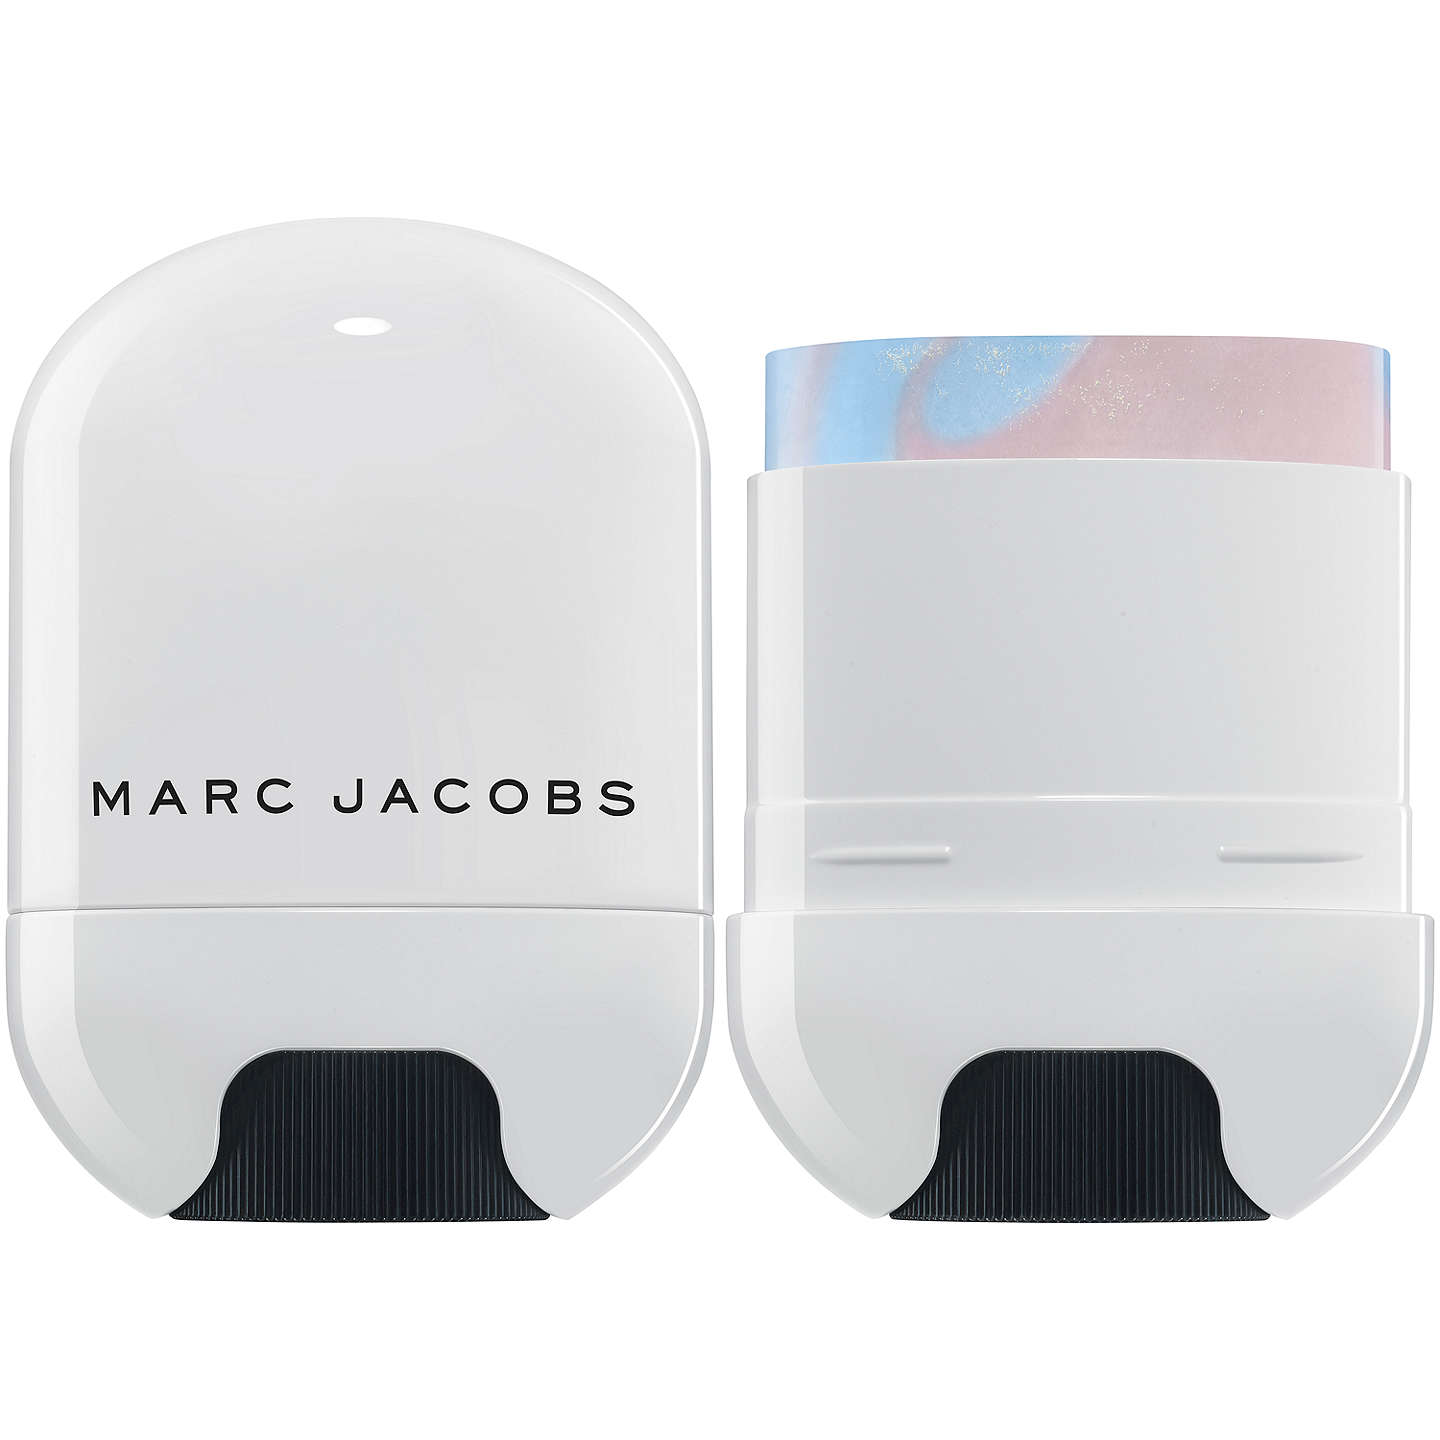 BuyMarc Jacobs Cover(t) Stick Colour Corrector, Bright Now Online at johnlewis.com